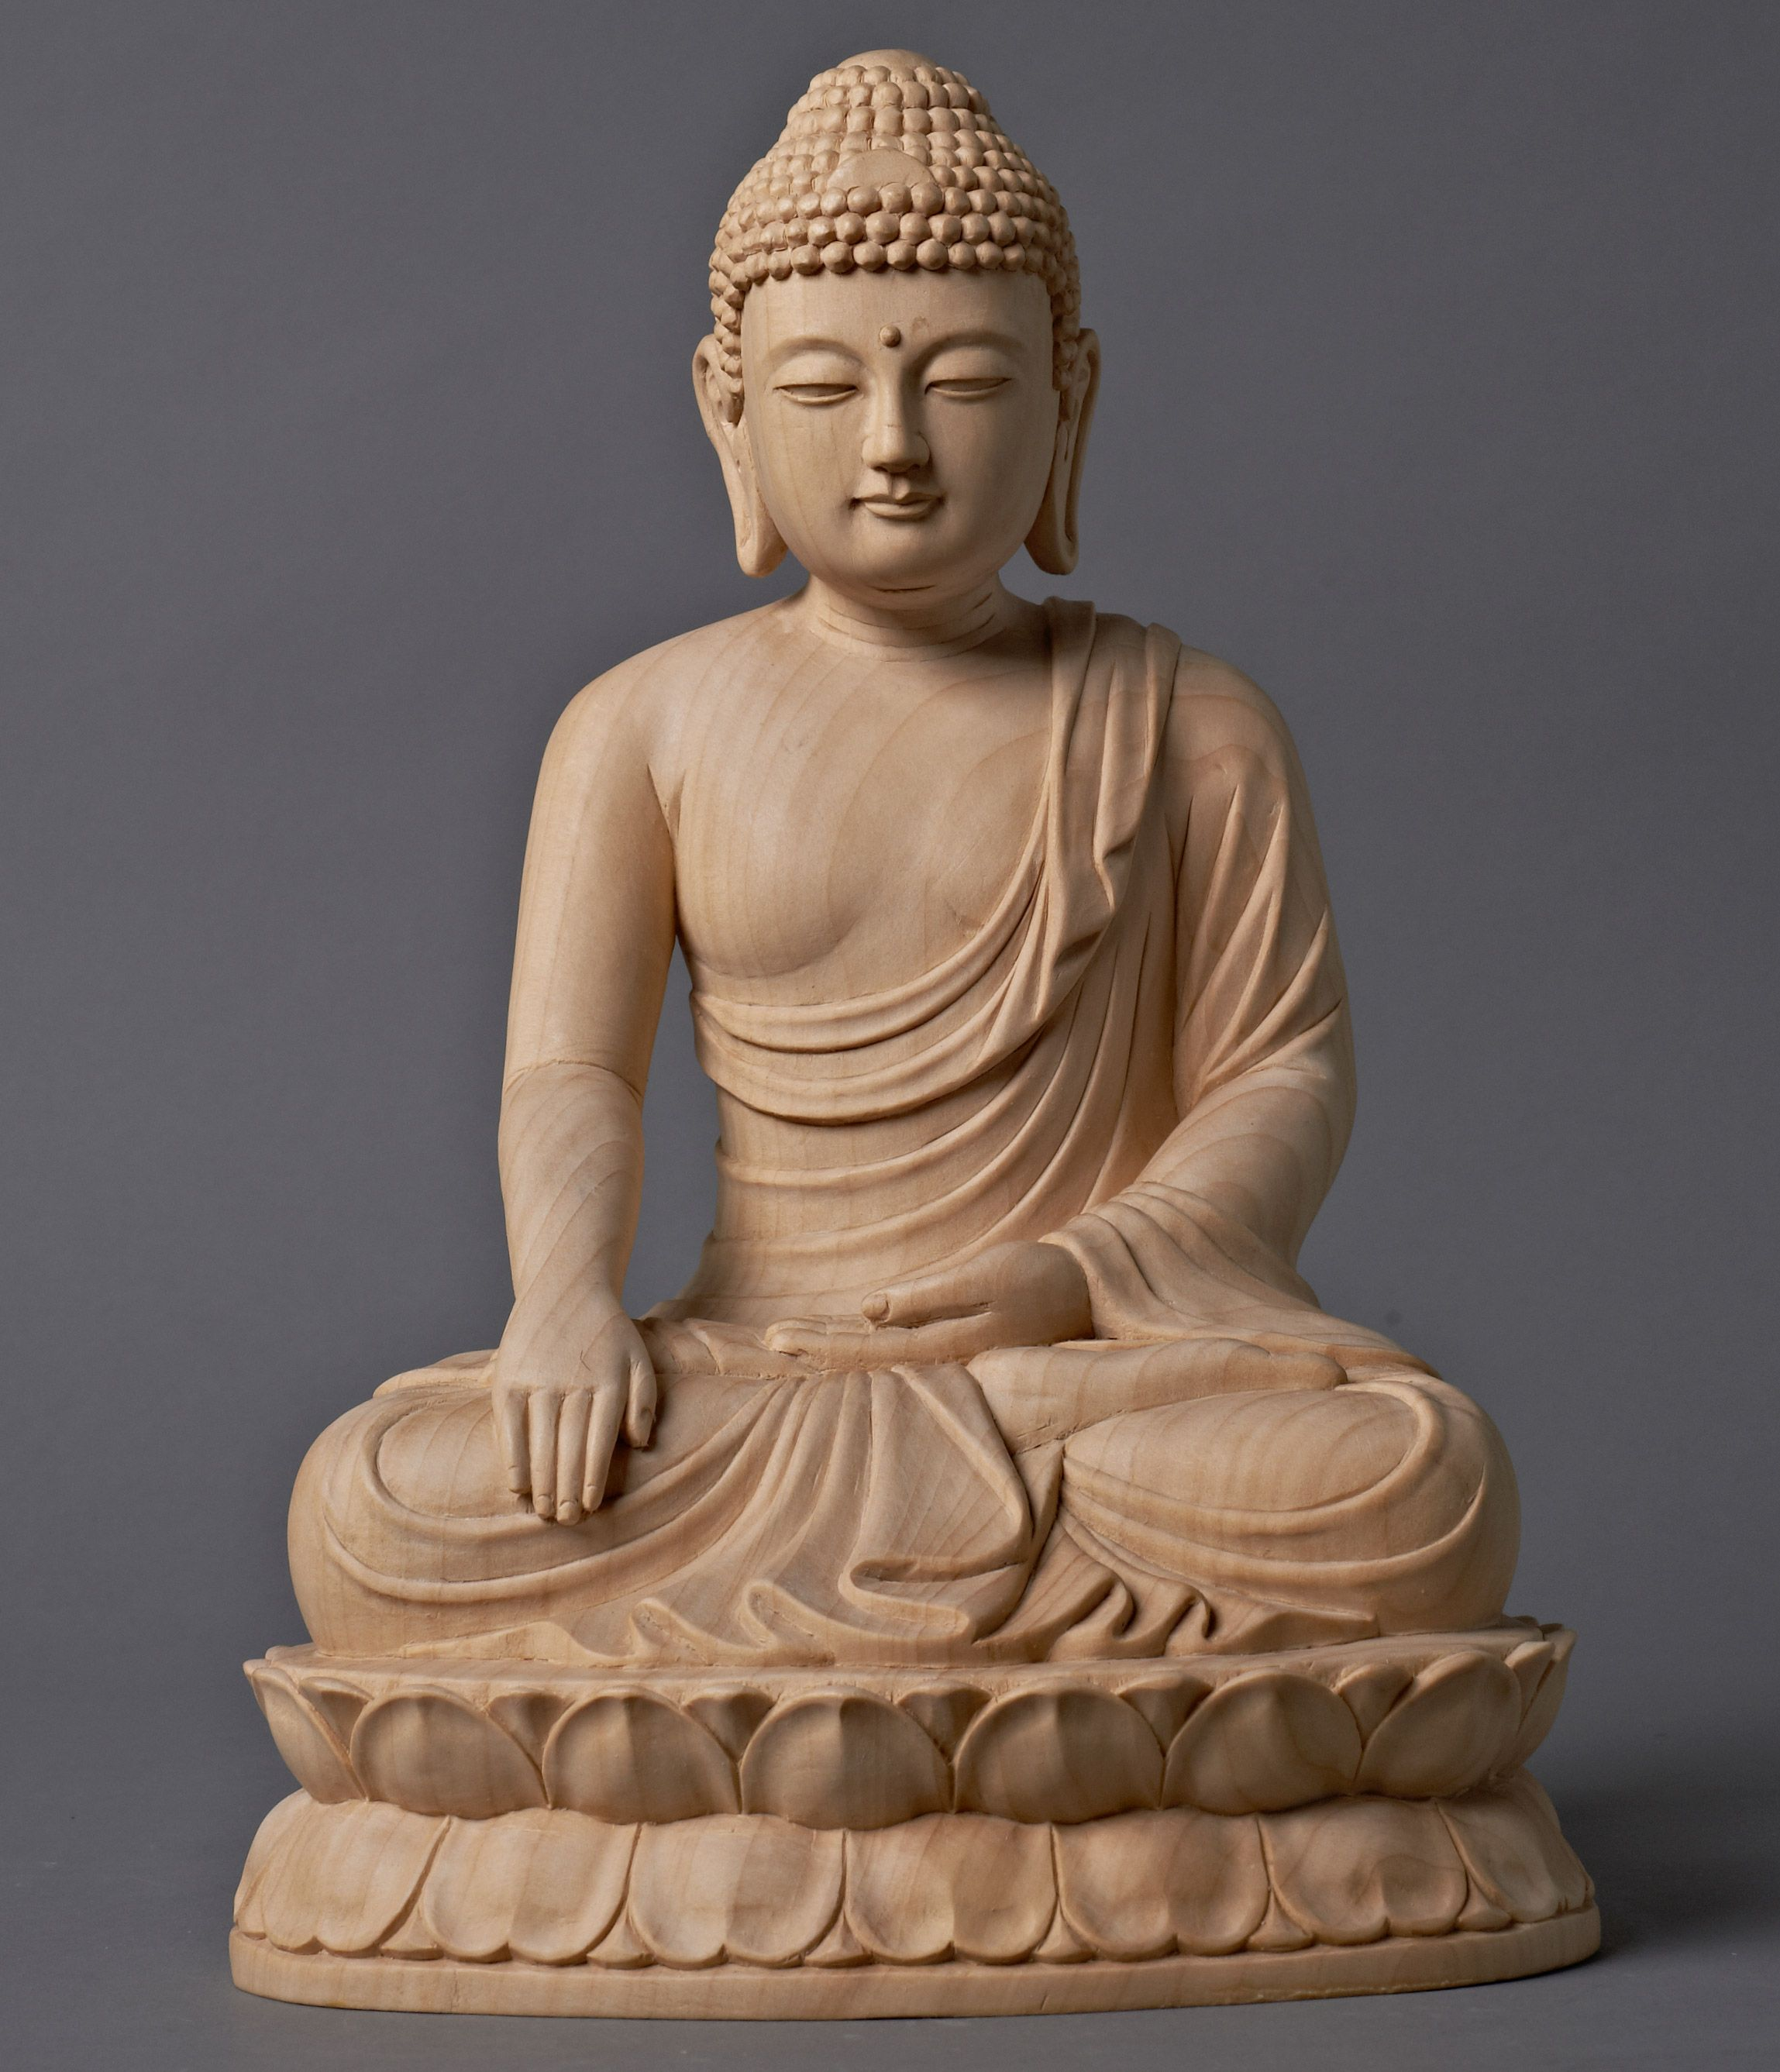 east canaan buddhist single women Local news for east canaan, ct continually updated from thousands of sources on the web.